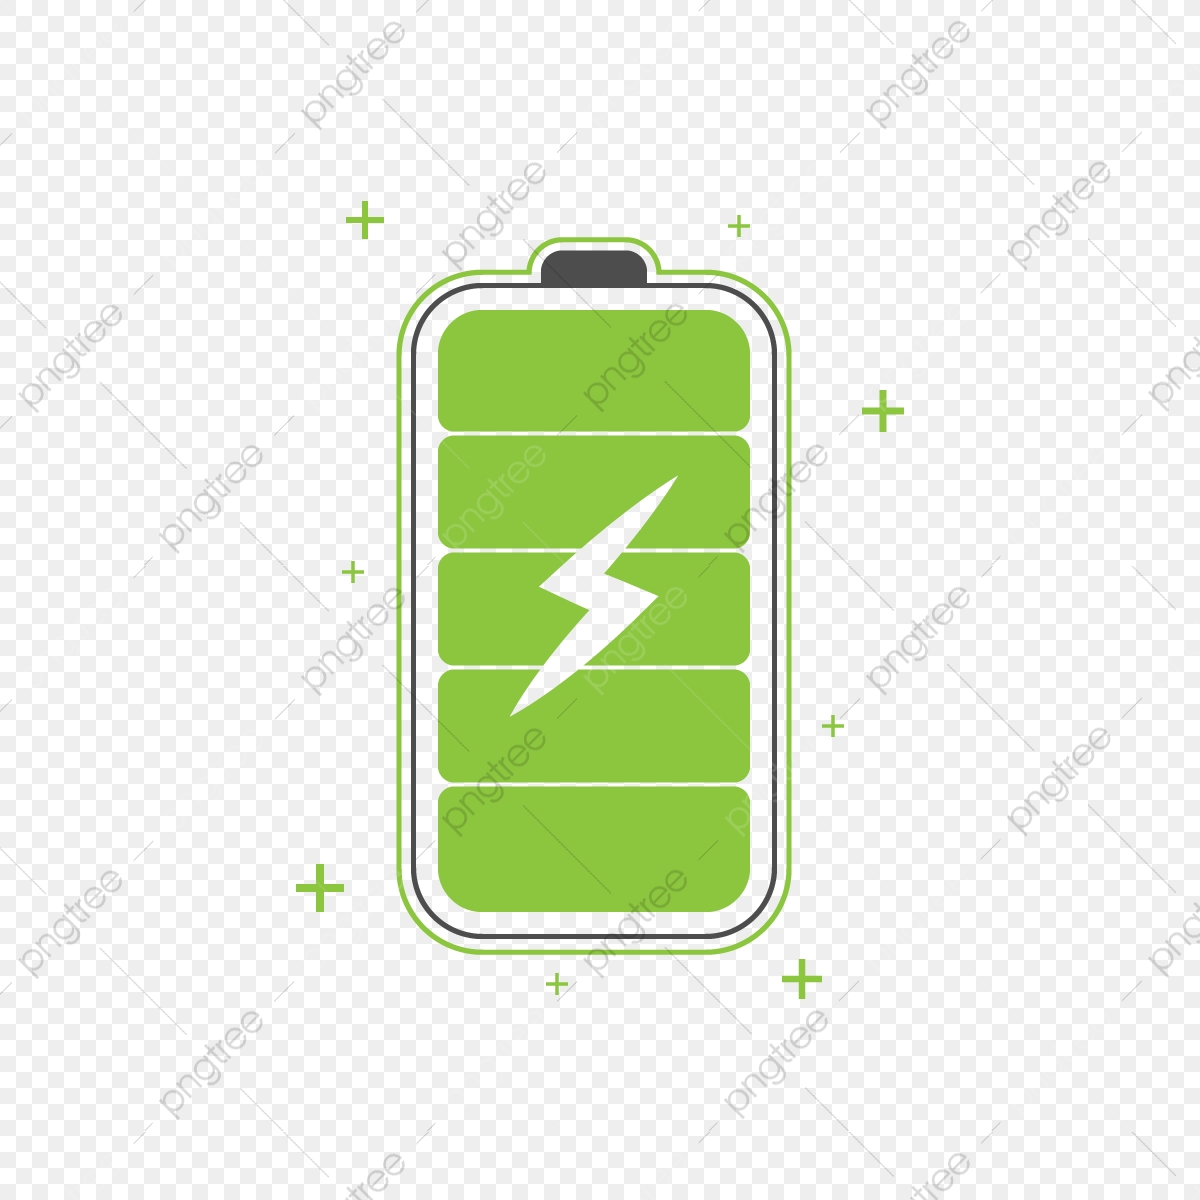 Battery Charge Png Images Vector And Psd Files Free Download On Pngtree